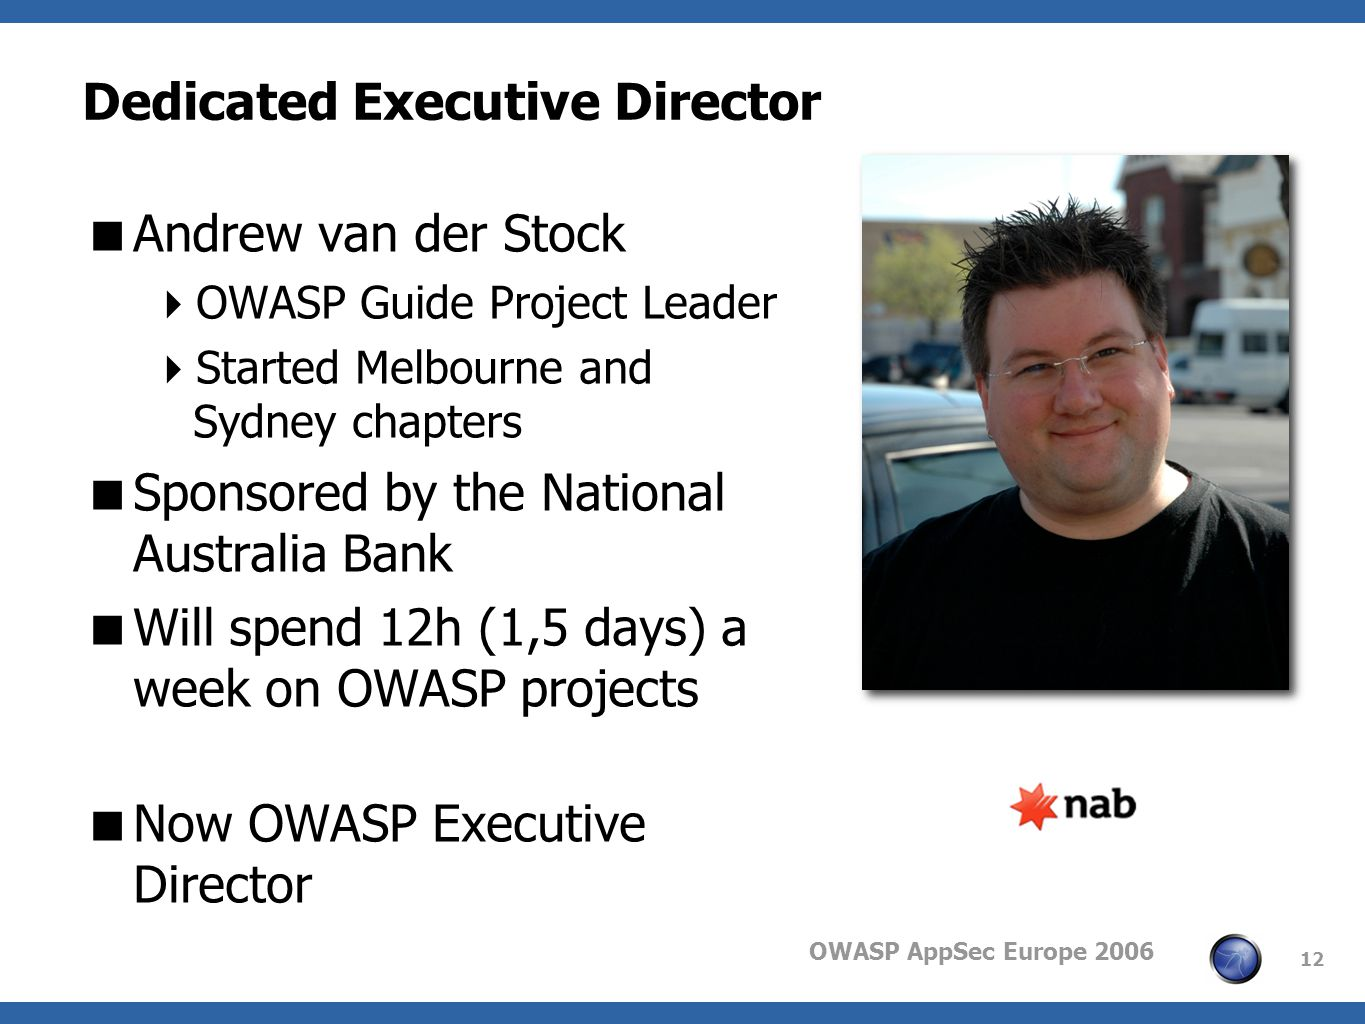 OWASP AppSec Europe 2006 12 Dedicated Executive Director Andrew van der Stock OWASP Guide Project Leader Started Melbourne and Sydney chapters Sponsored by the National Australia Bank Will spend 12h (1,5 days) a week on OWASP projects Now OWASP Executive Director